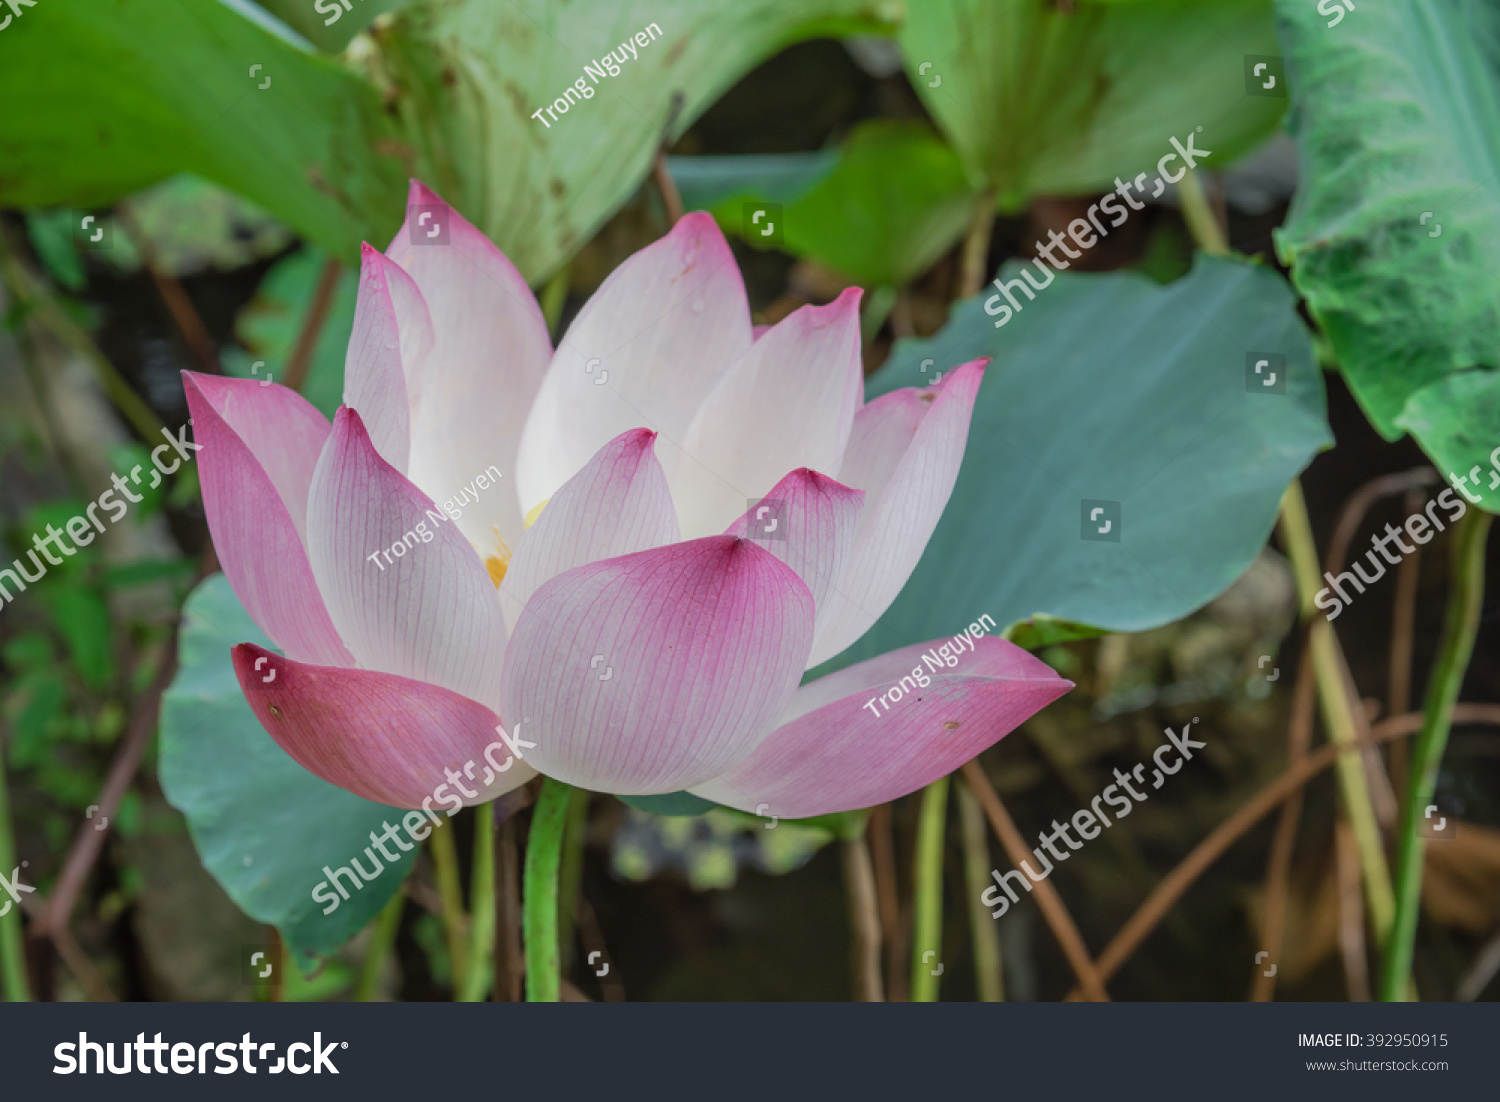 Closeup view blooming pink lotus flower stock photo edit now close up view blooming pink lotus flower or nelumbo nucifera gaertn nelumbonaceae izmirmasajfo